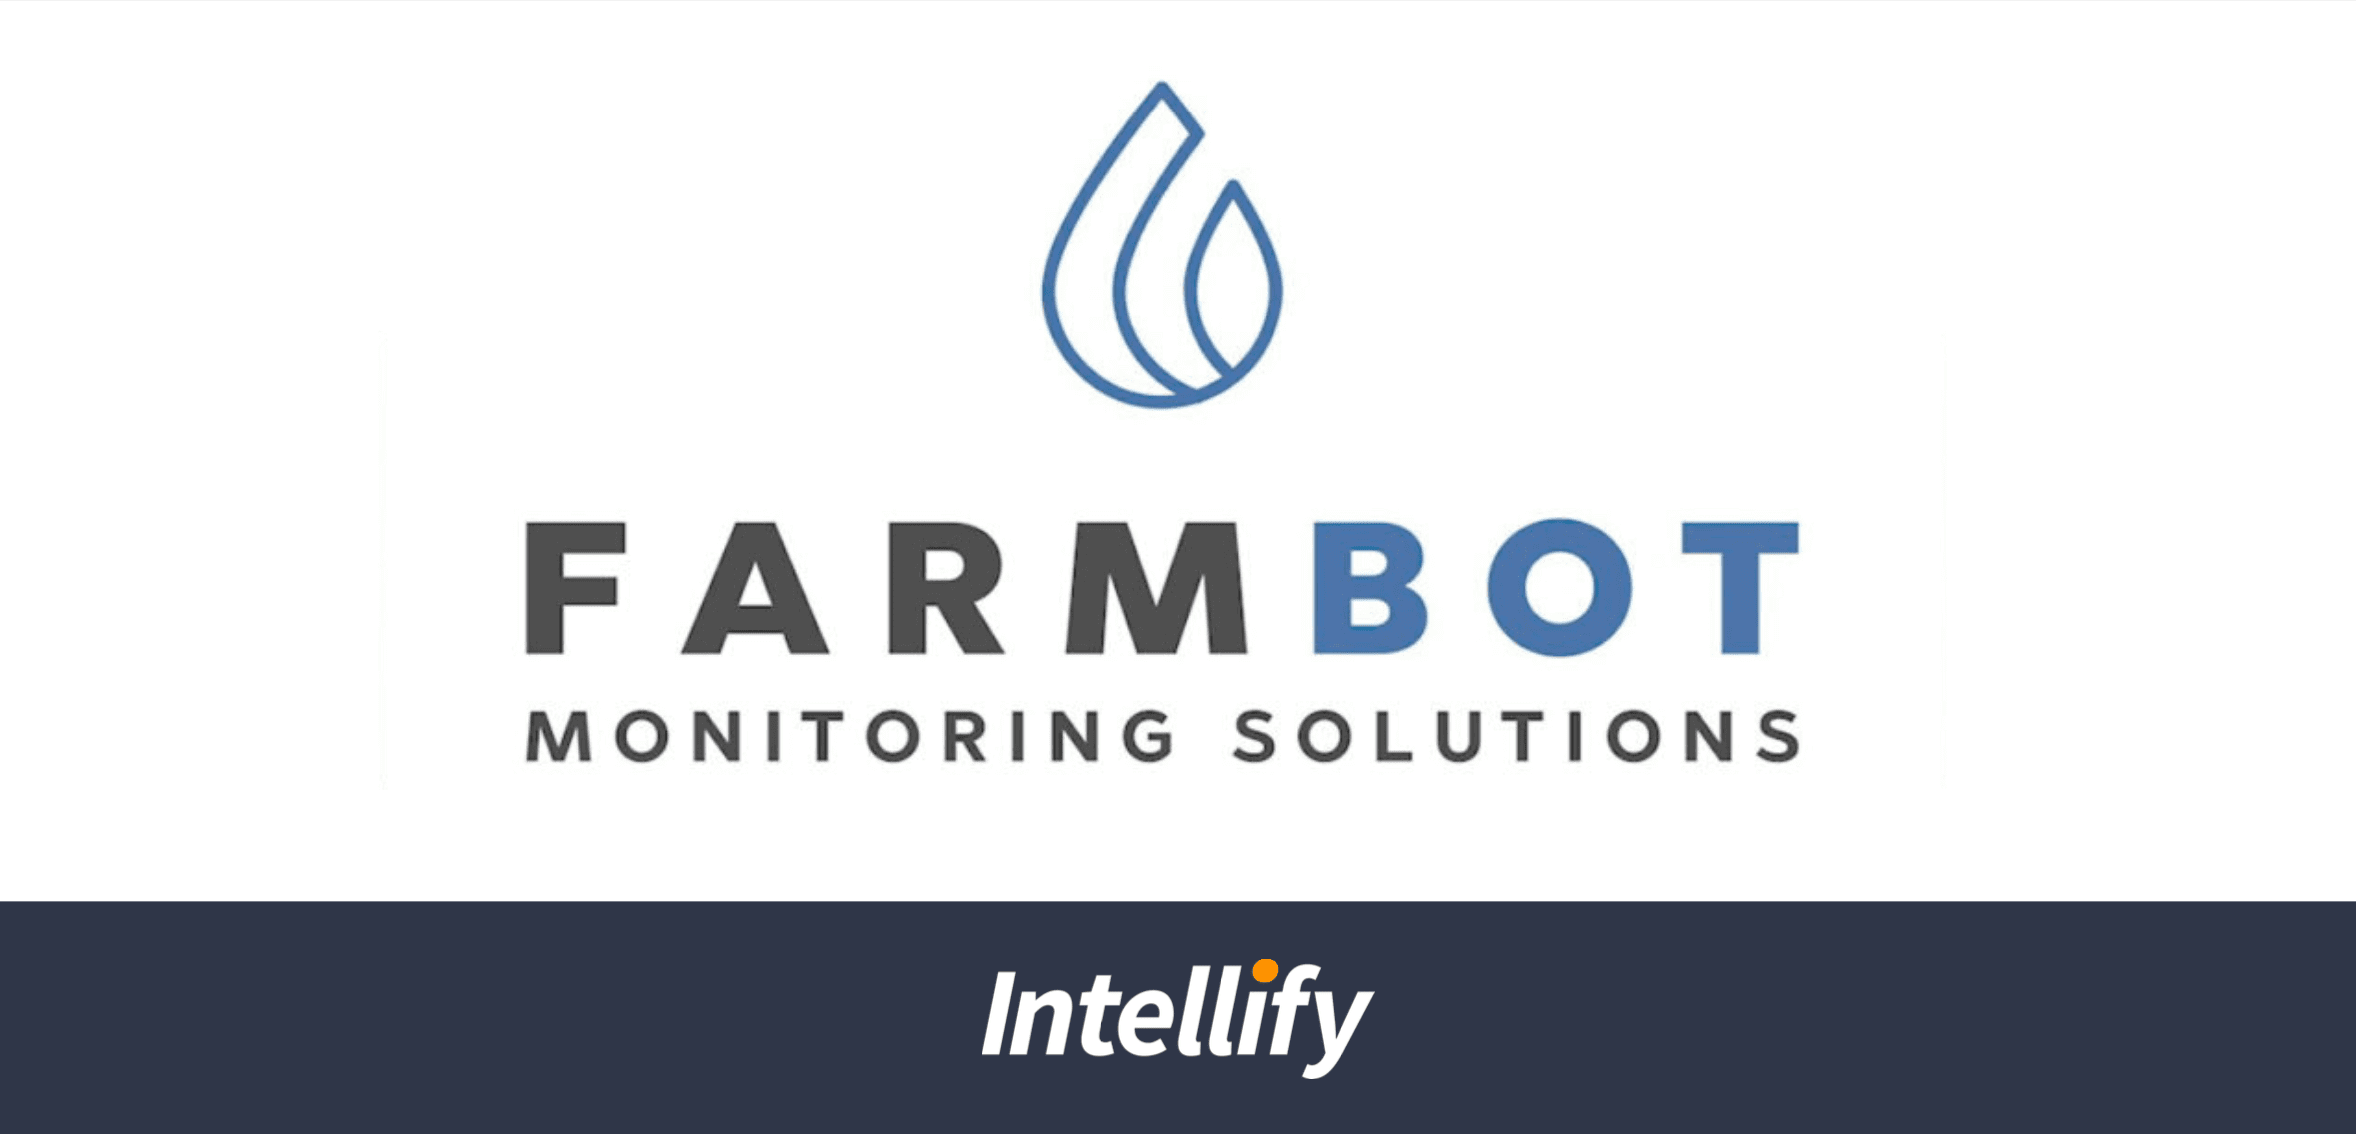 Anomaly Detection For A Remote Monitoring Solutions Company